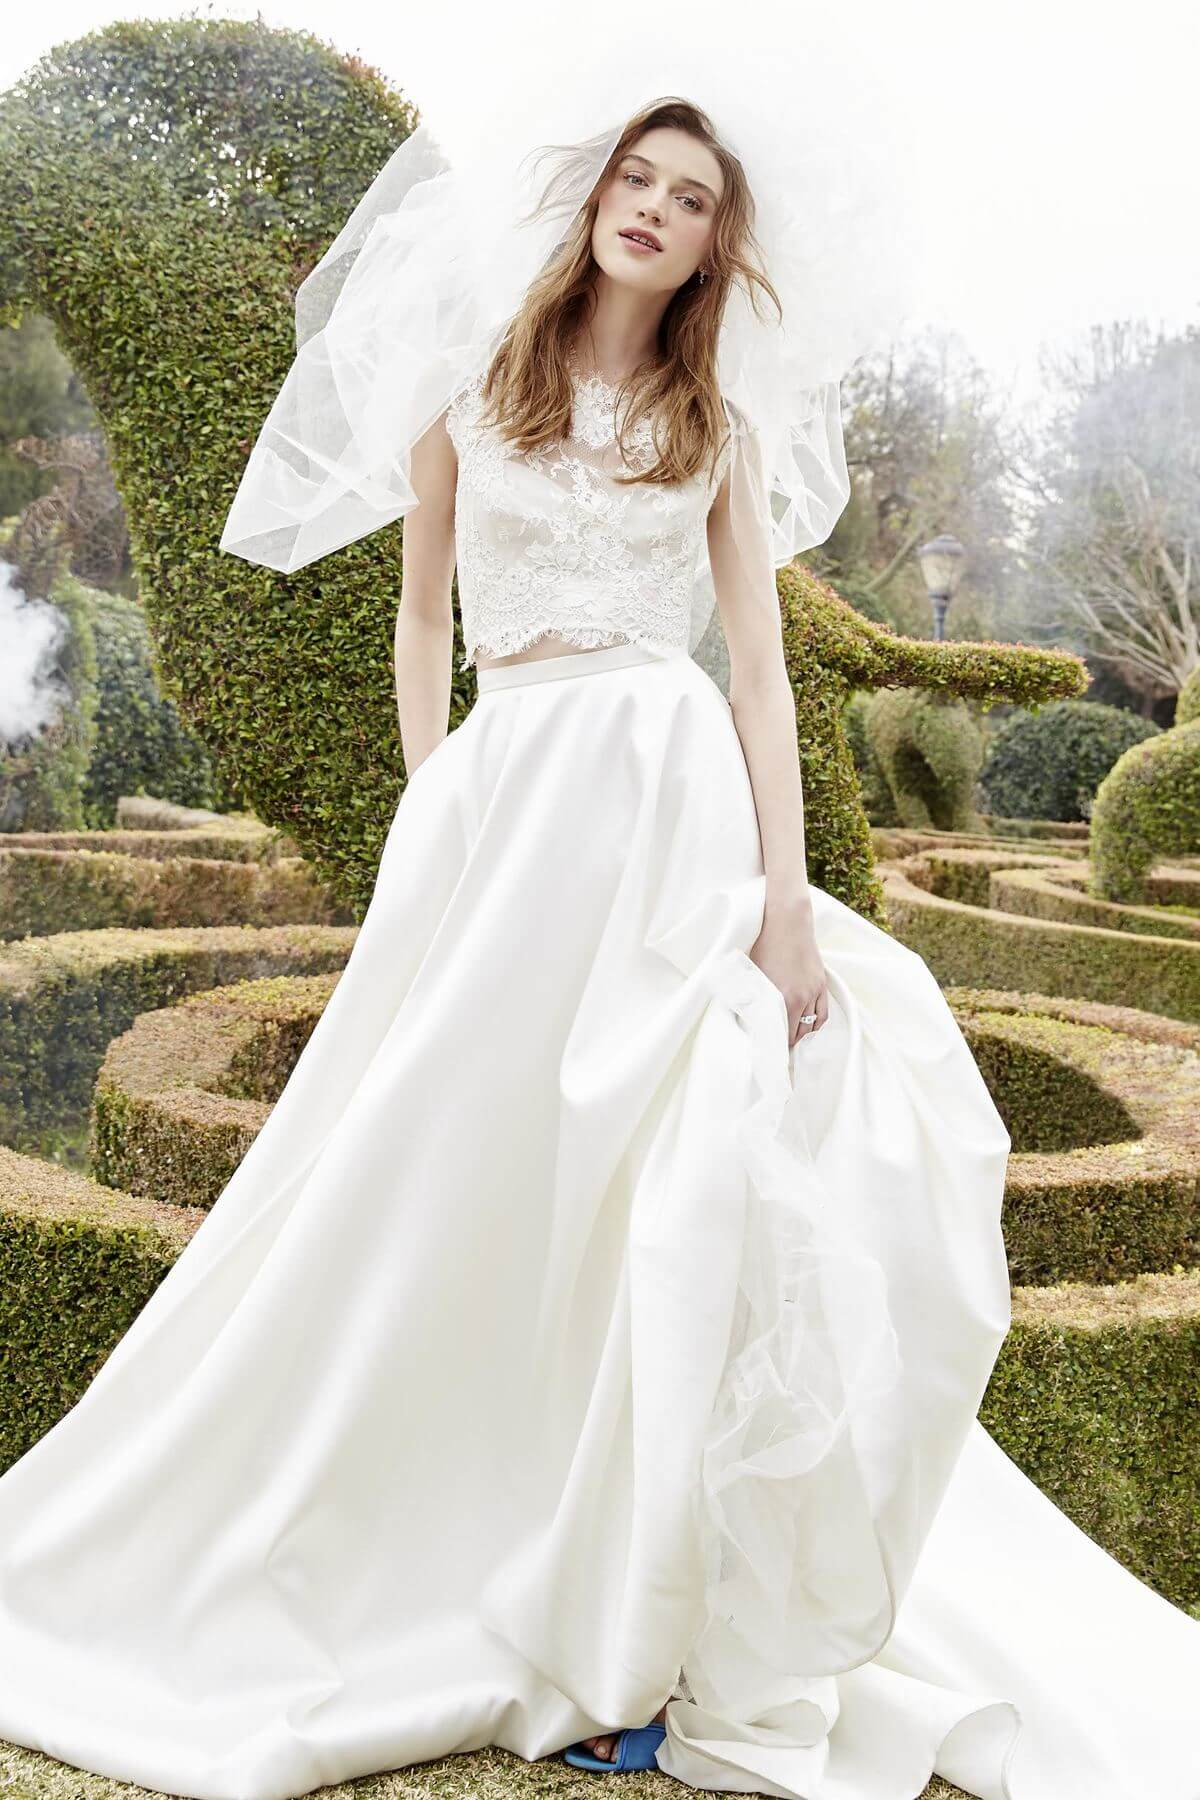 This two-piece 'Bliss' dress by Monique Lhuillier is fresh, fun and flirty. Perfect for the young bride! Image: Ivory & White